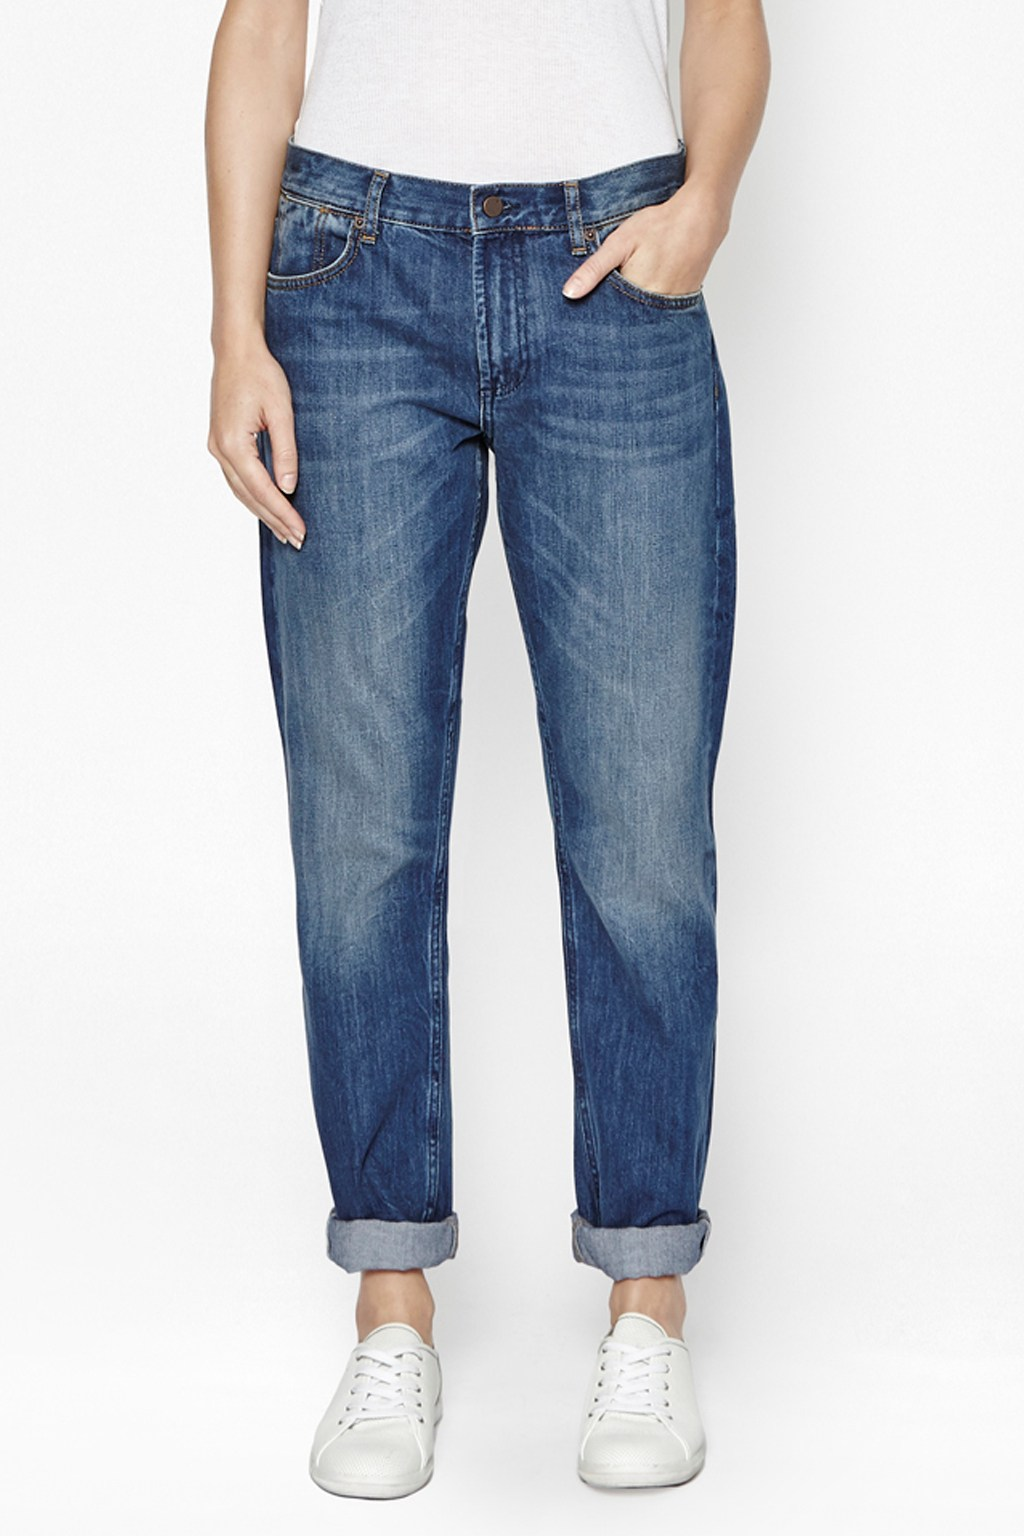 Find great deals on eBay for boyfriend jeans. Shop with confidence.